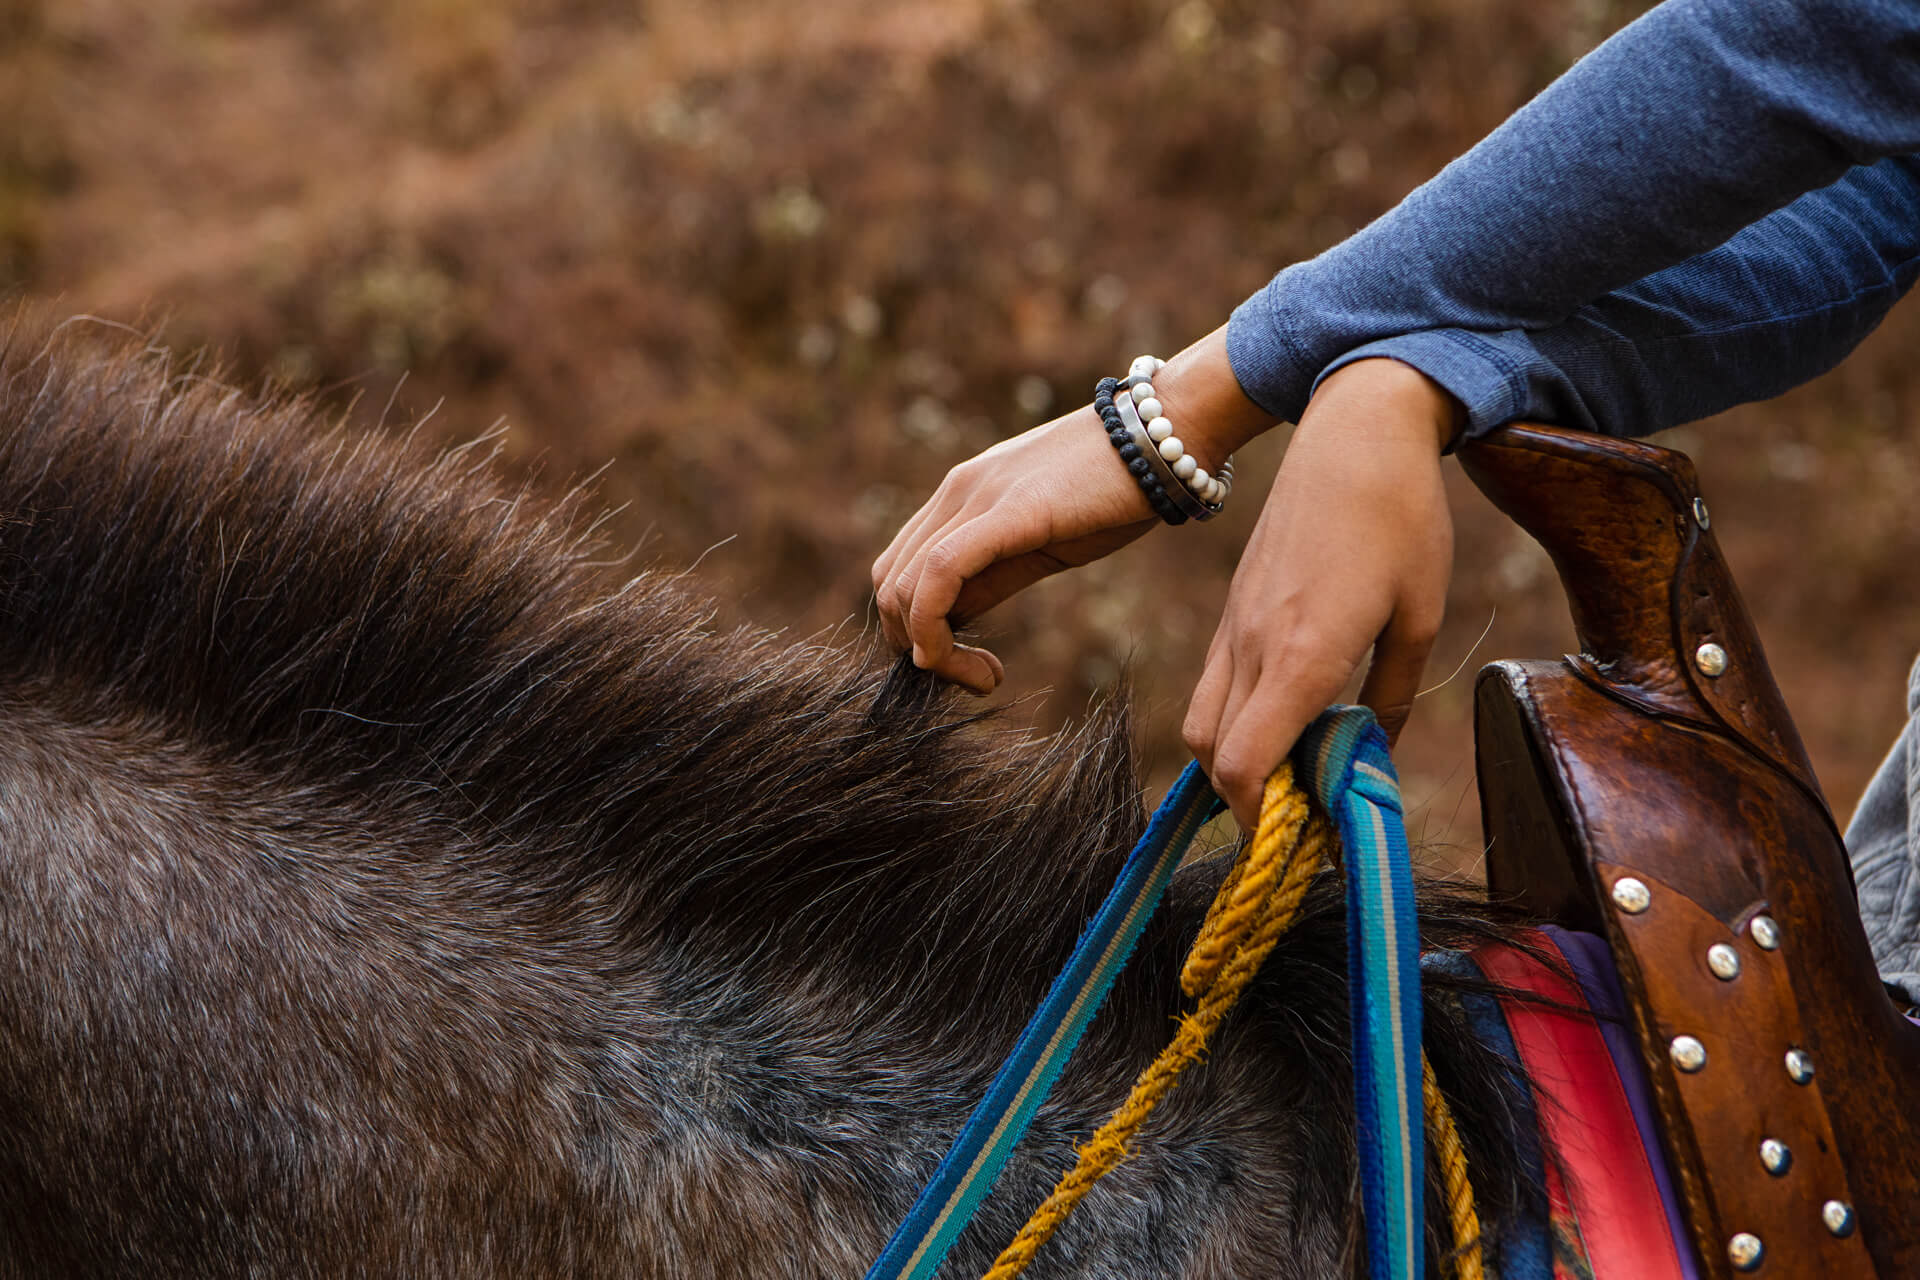 Up north in Baguio, Solana Perez knows how to embrace the wild, having grown up with horses all her life.